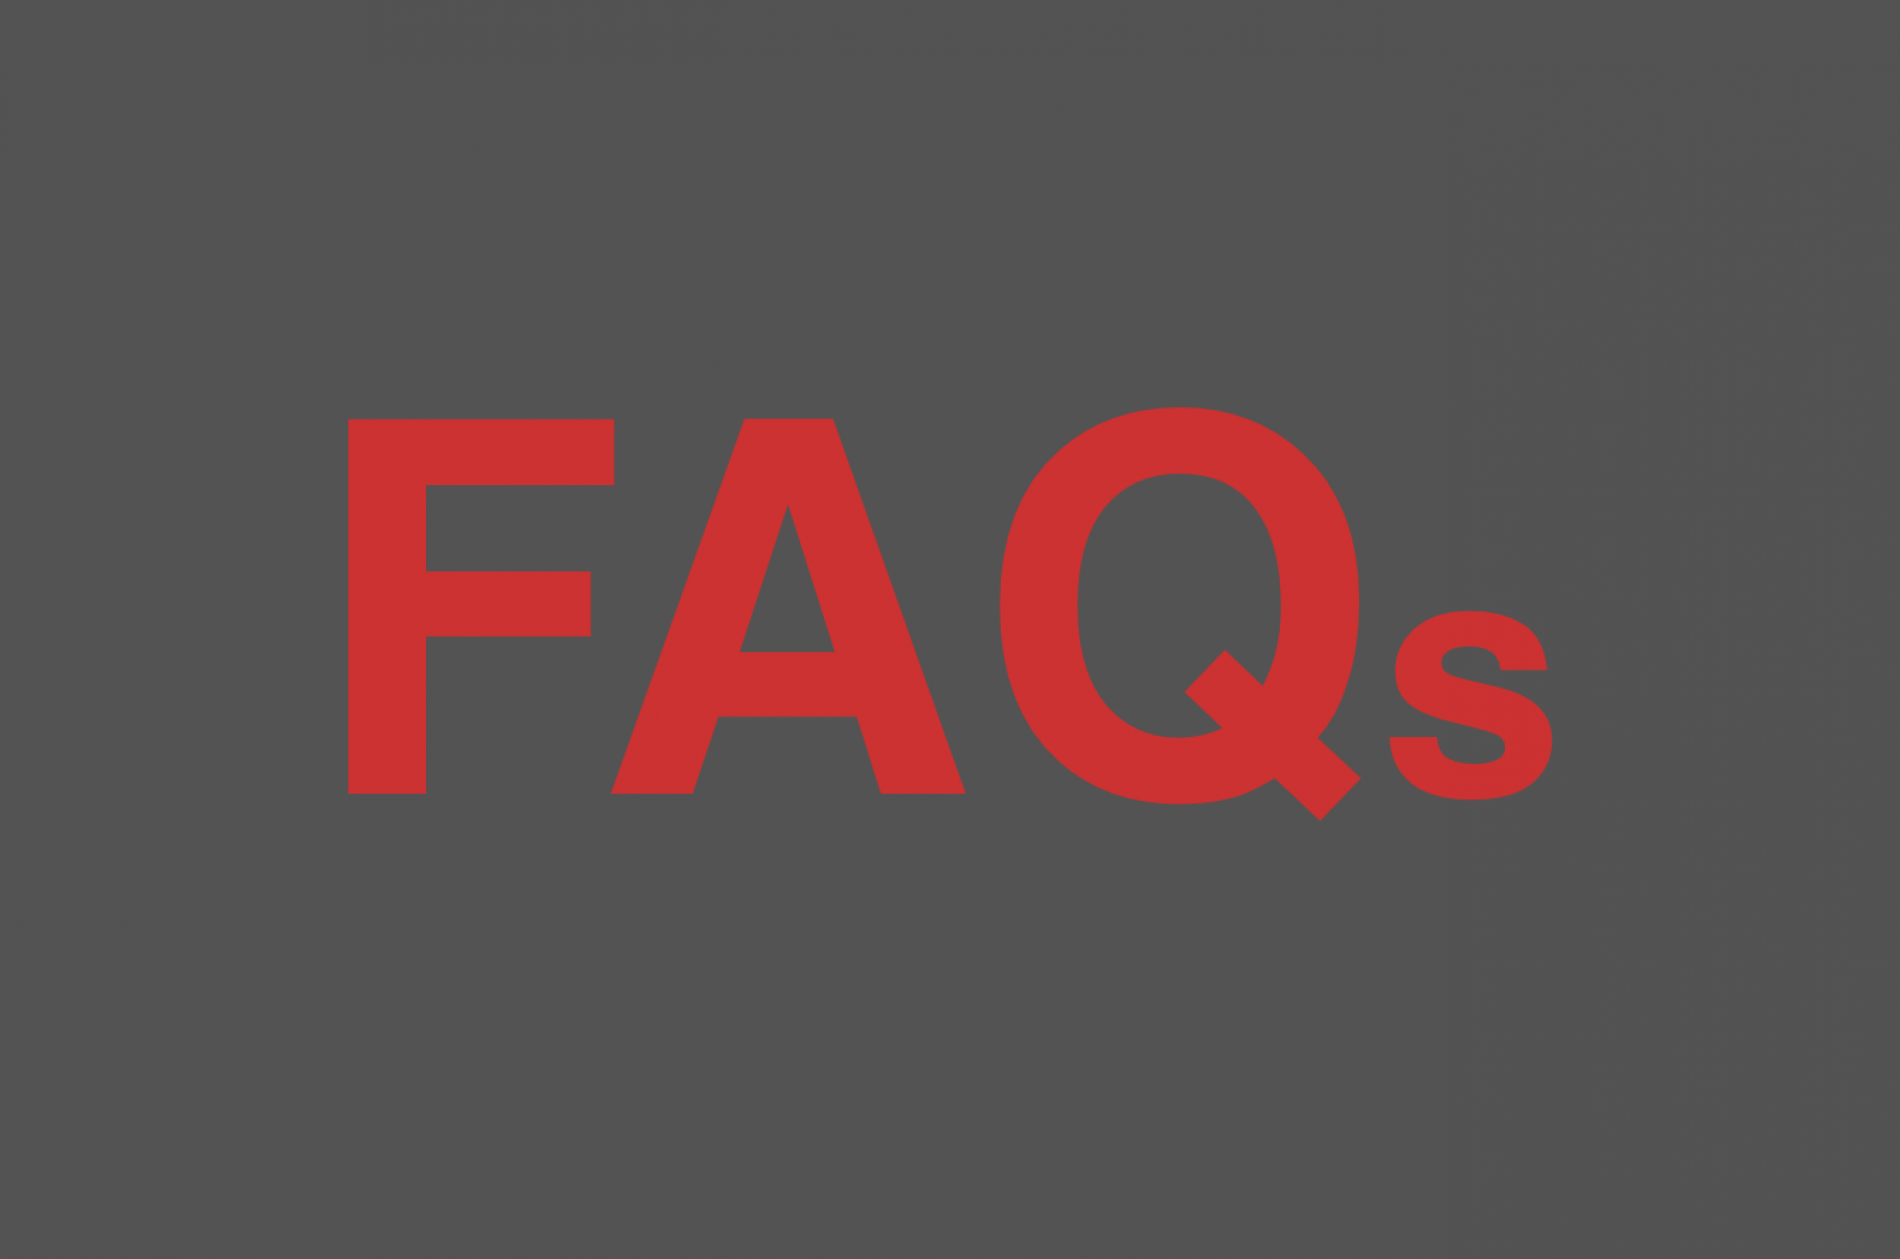 FAQs red letters on gray ground